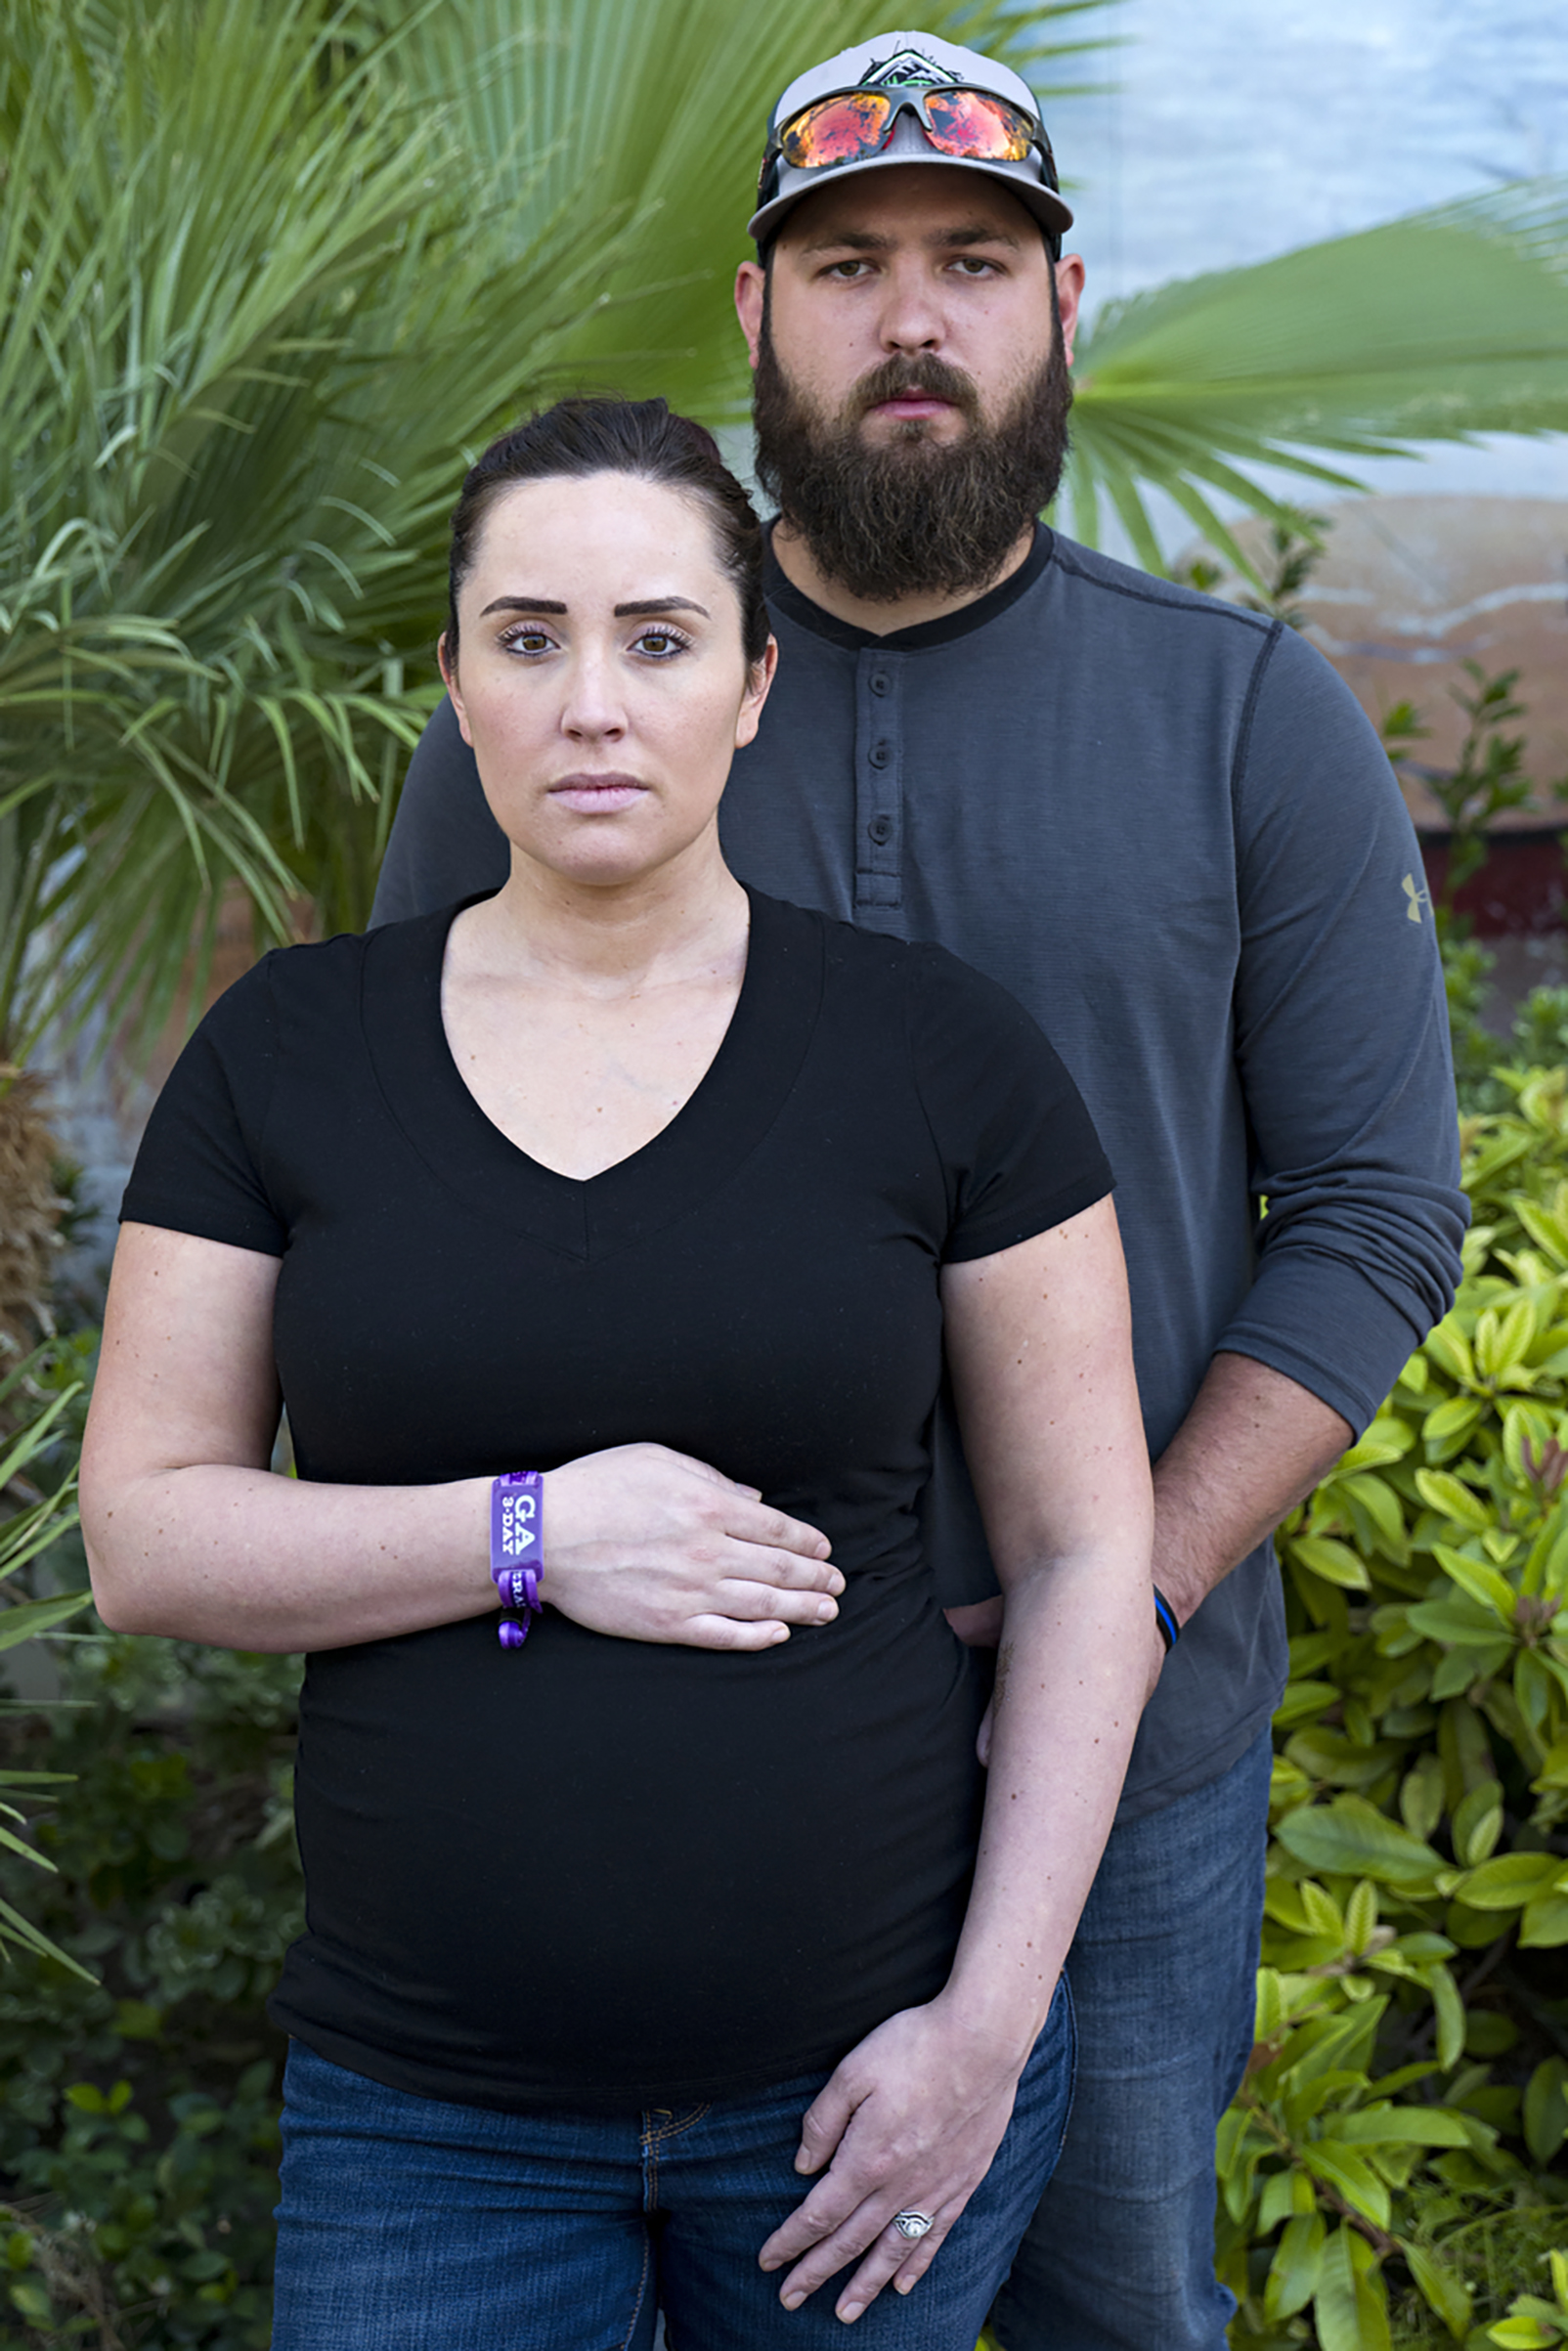 Survivors of the mass shooting, Kelsey Clark eight-months pregnant poses for a portrait with her husband Toby Clark, Las Vegas, Oct. 3, 2017.